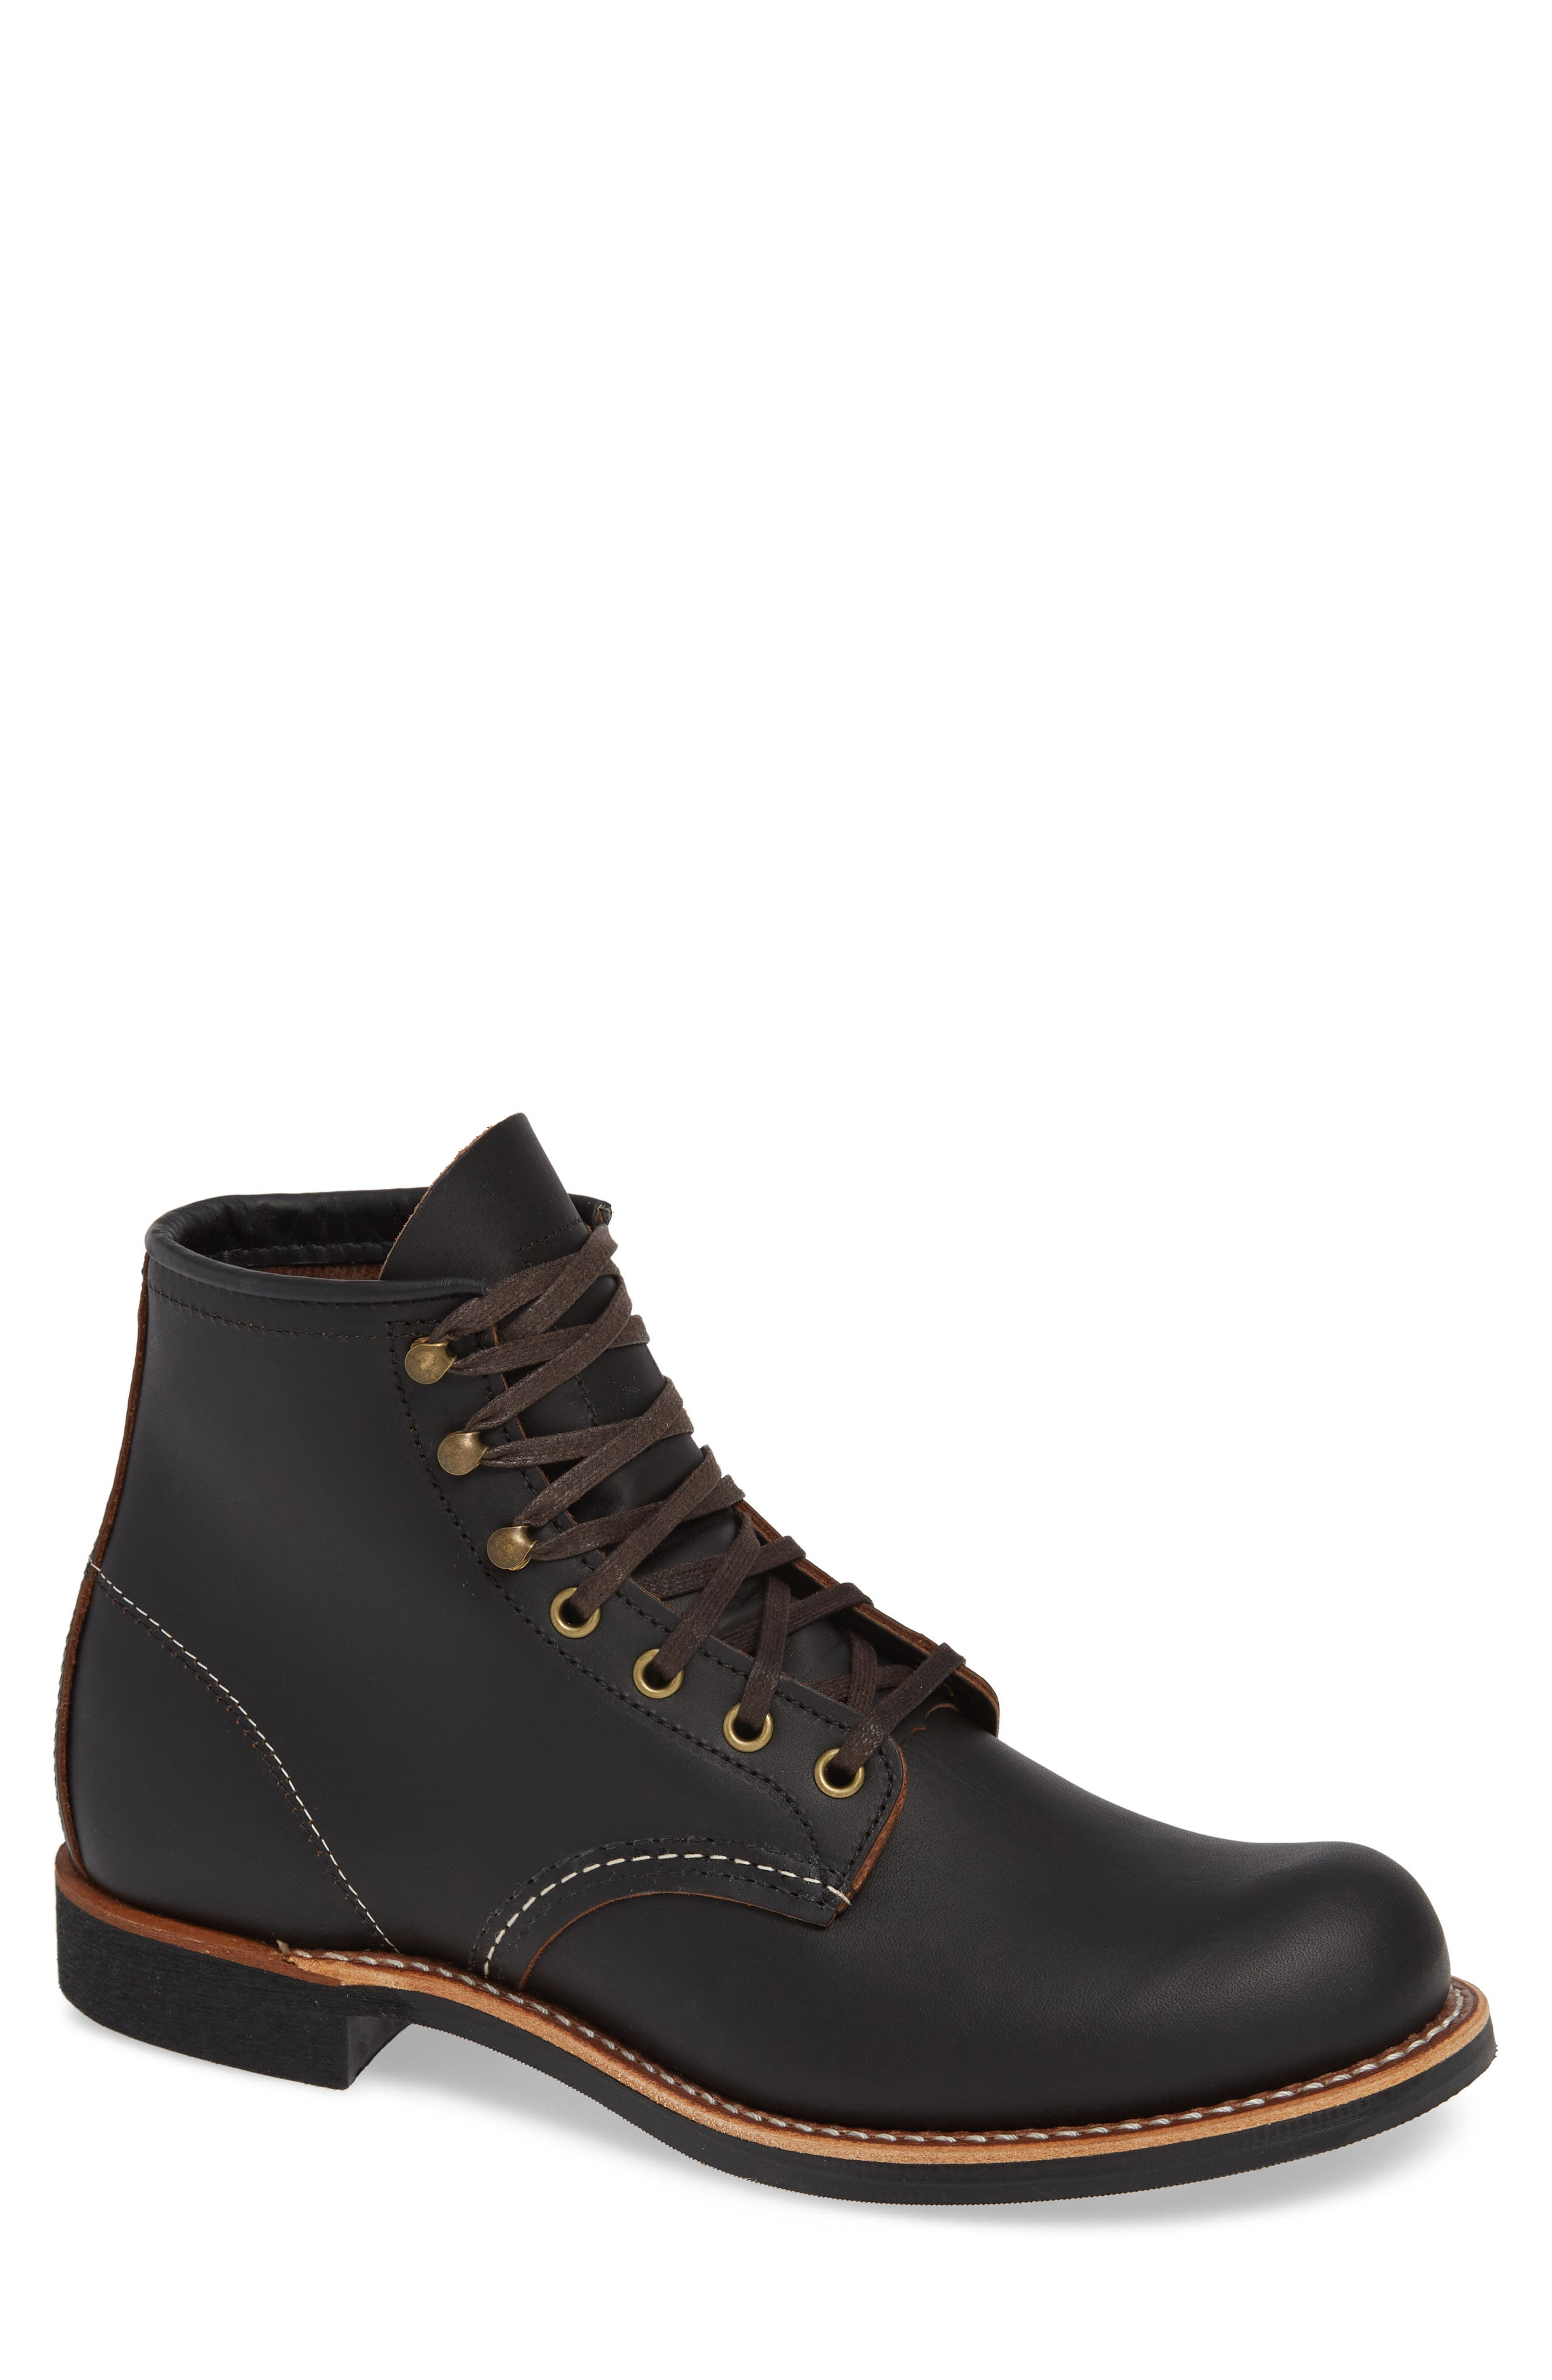 RED WING Blacksmith Boot, Main, color, BLACK LEATHER